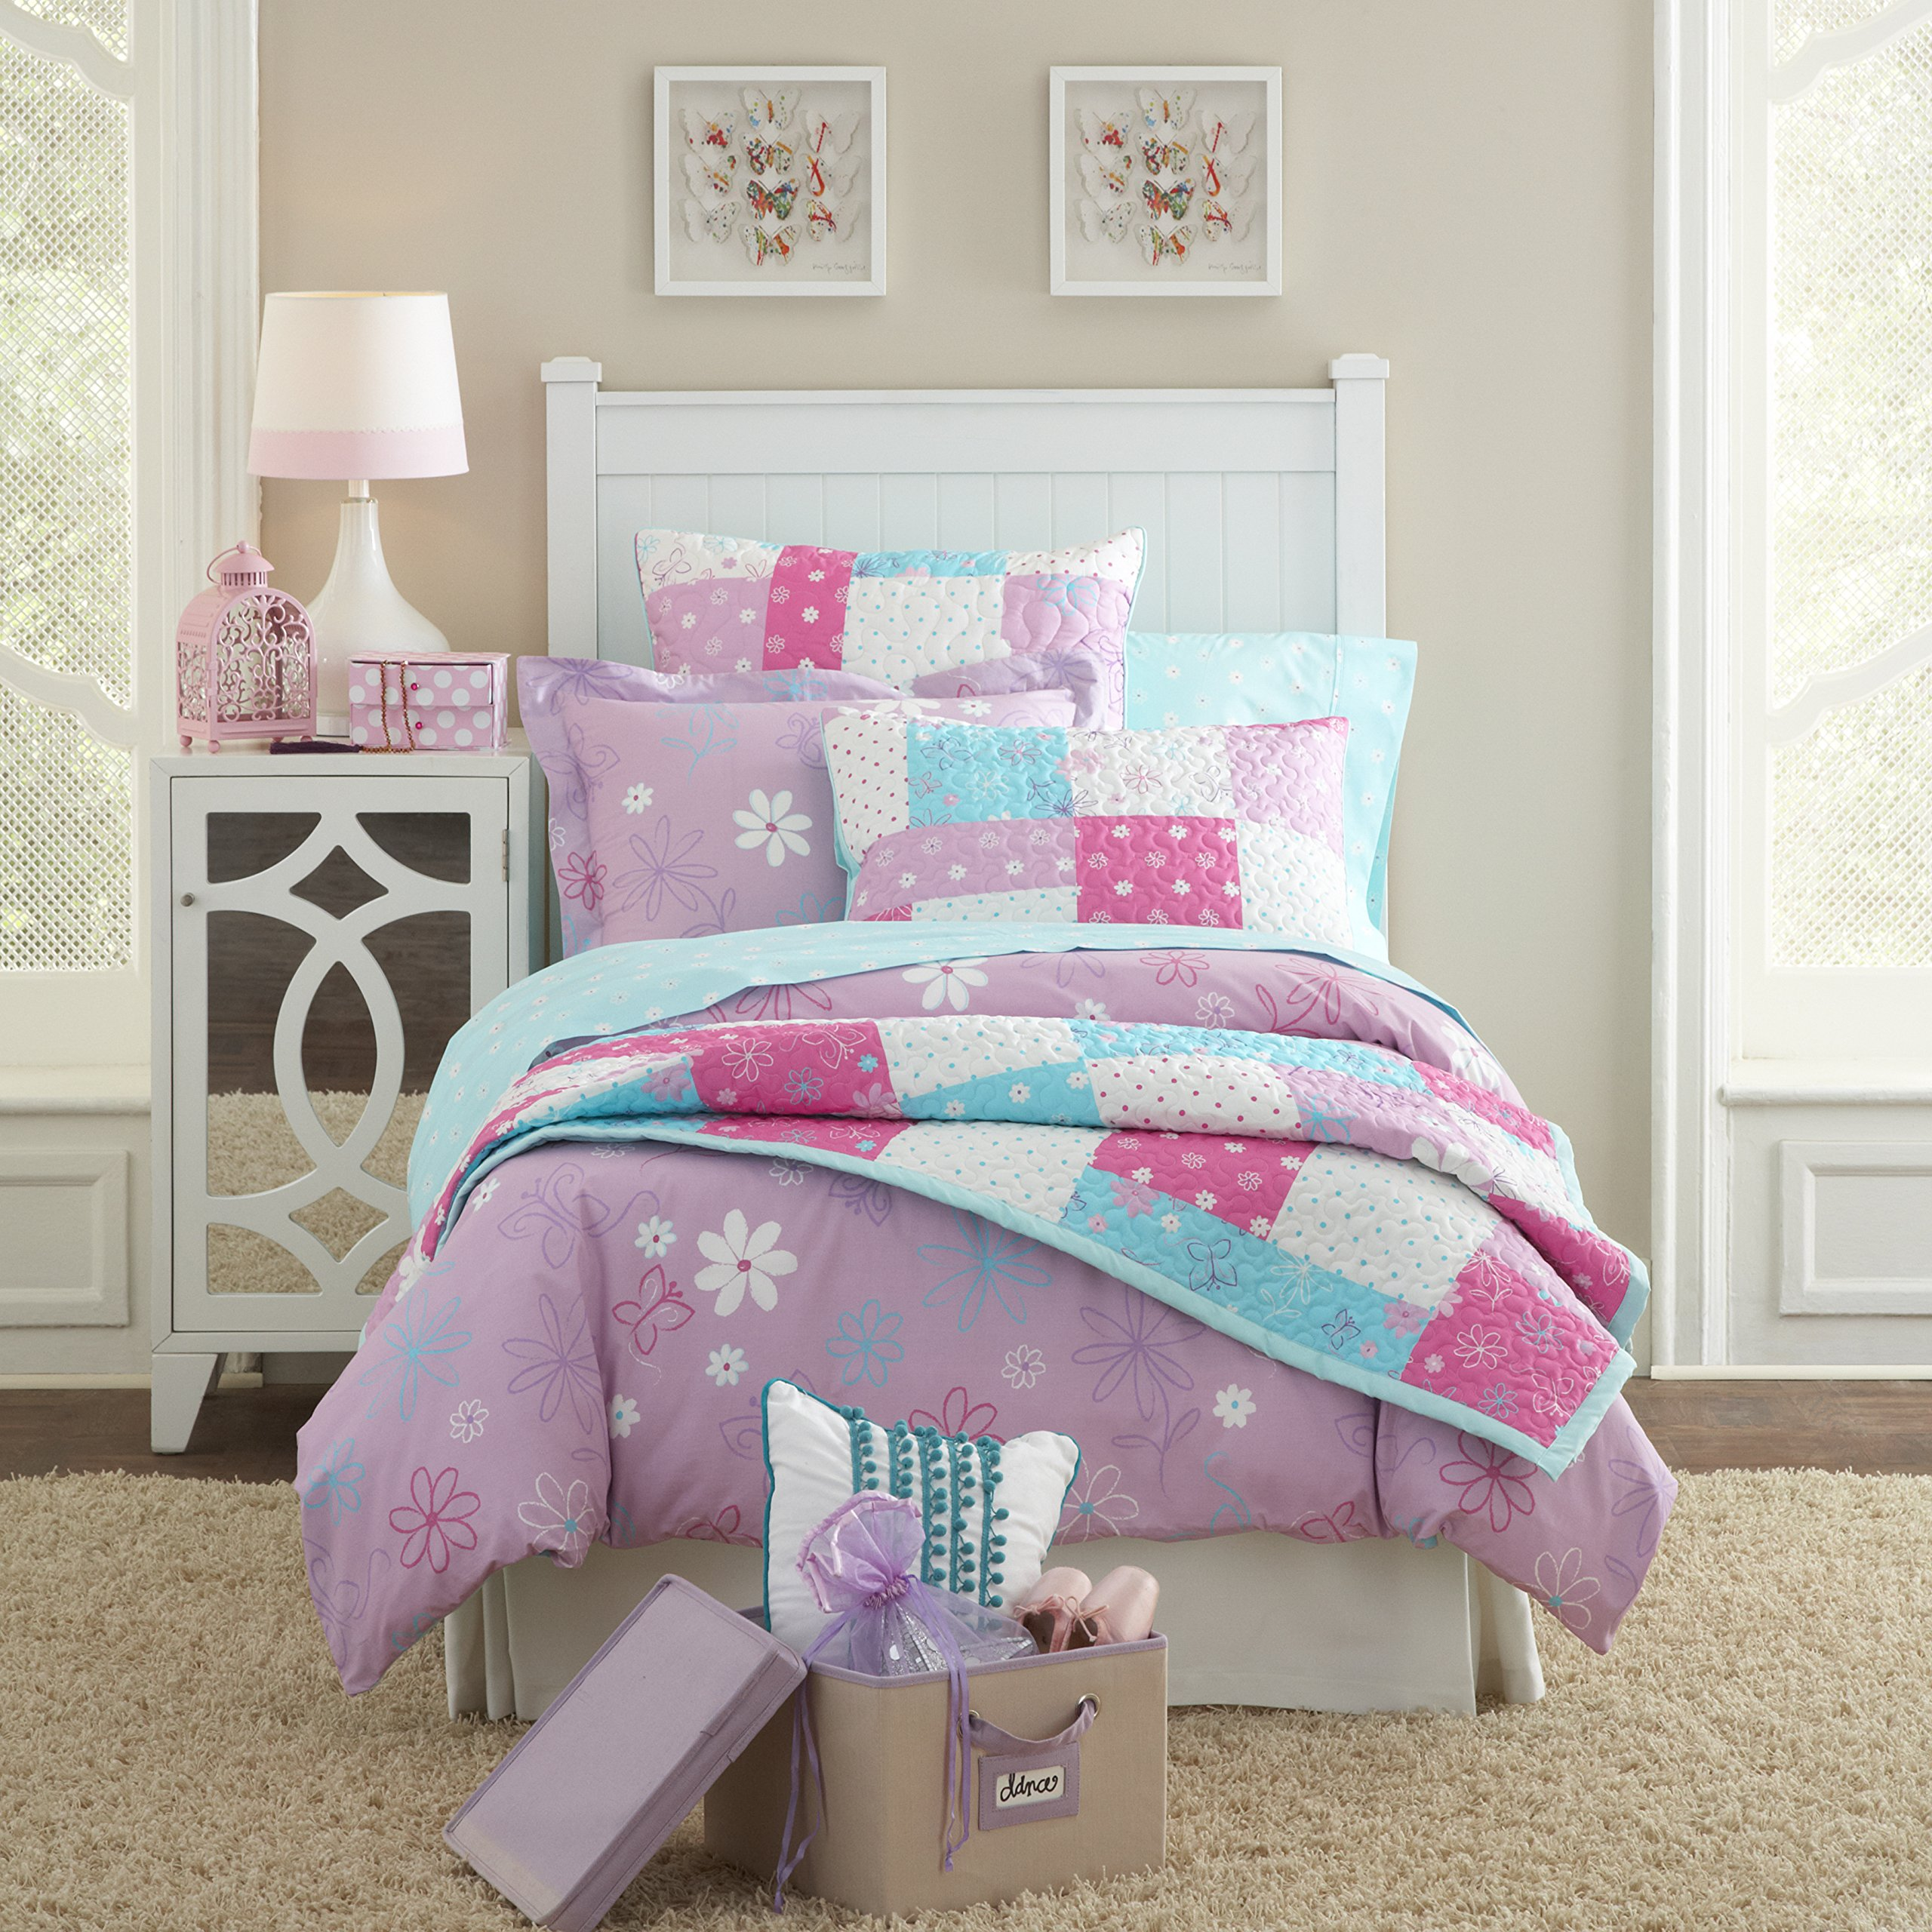 Lullaby Bedding 200QL-FQBFLY 3 Piece Butterfly Garden Cotton Printed Quilt Set, Full/Queen